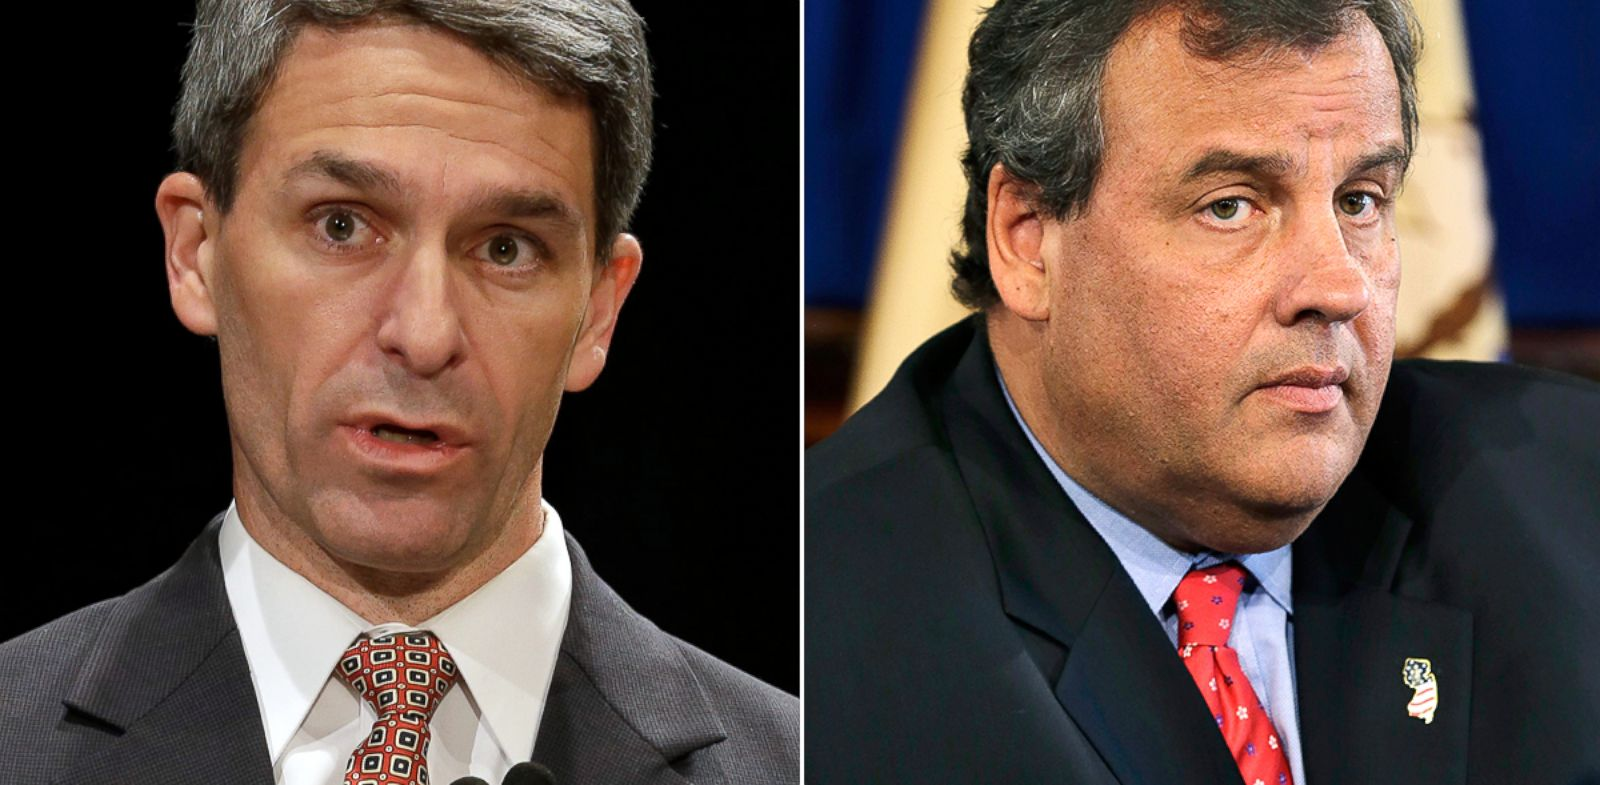 PHOTO: Ken Cuccinelli speaks during a debate at Virginia Tech in Blacksburg, Va., Thursday, Oct. 24, 2013. Chris Christie listens to a question in Trenton, N.J., Sept. 18, 2013.